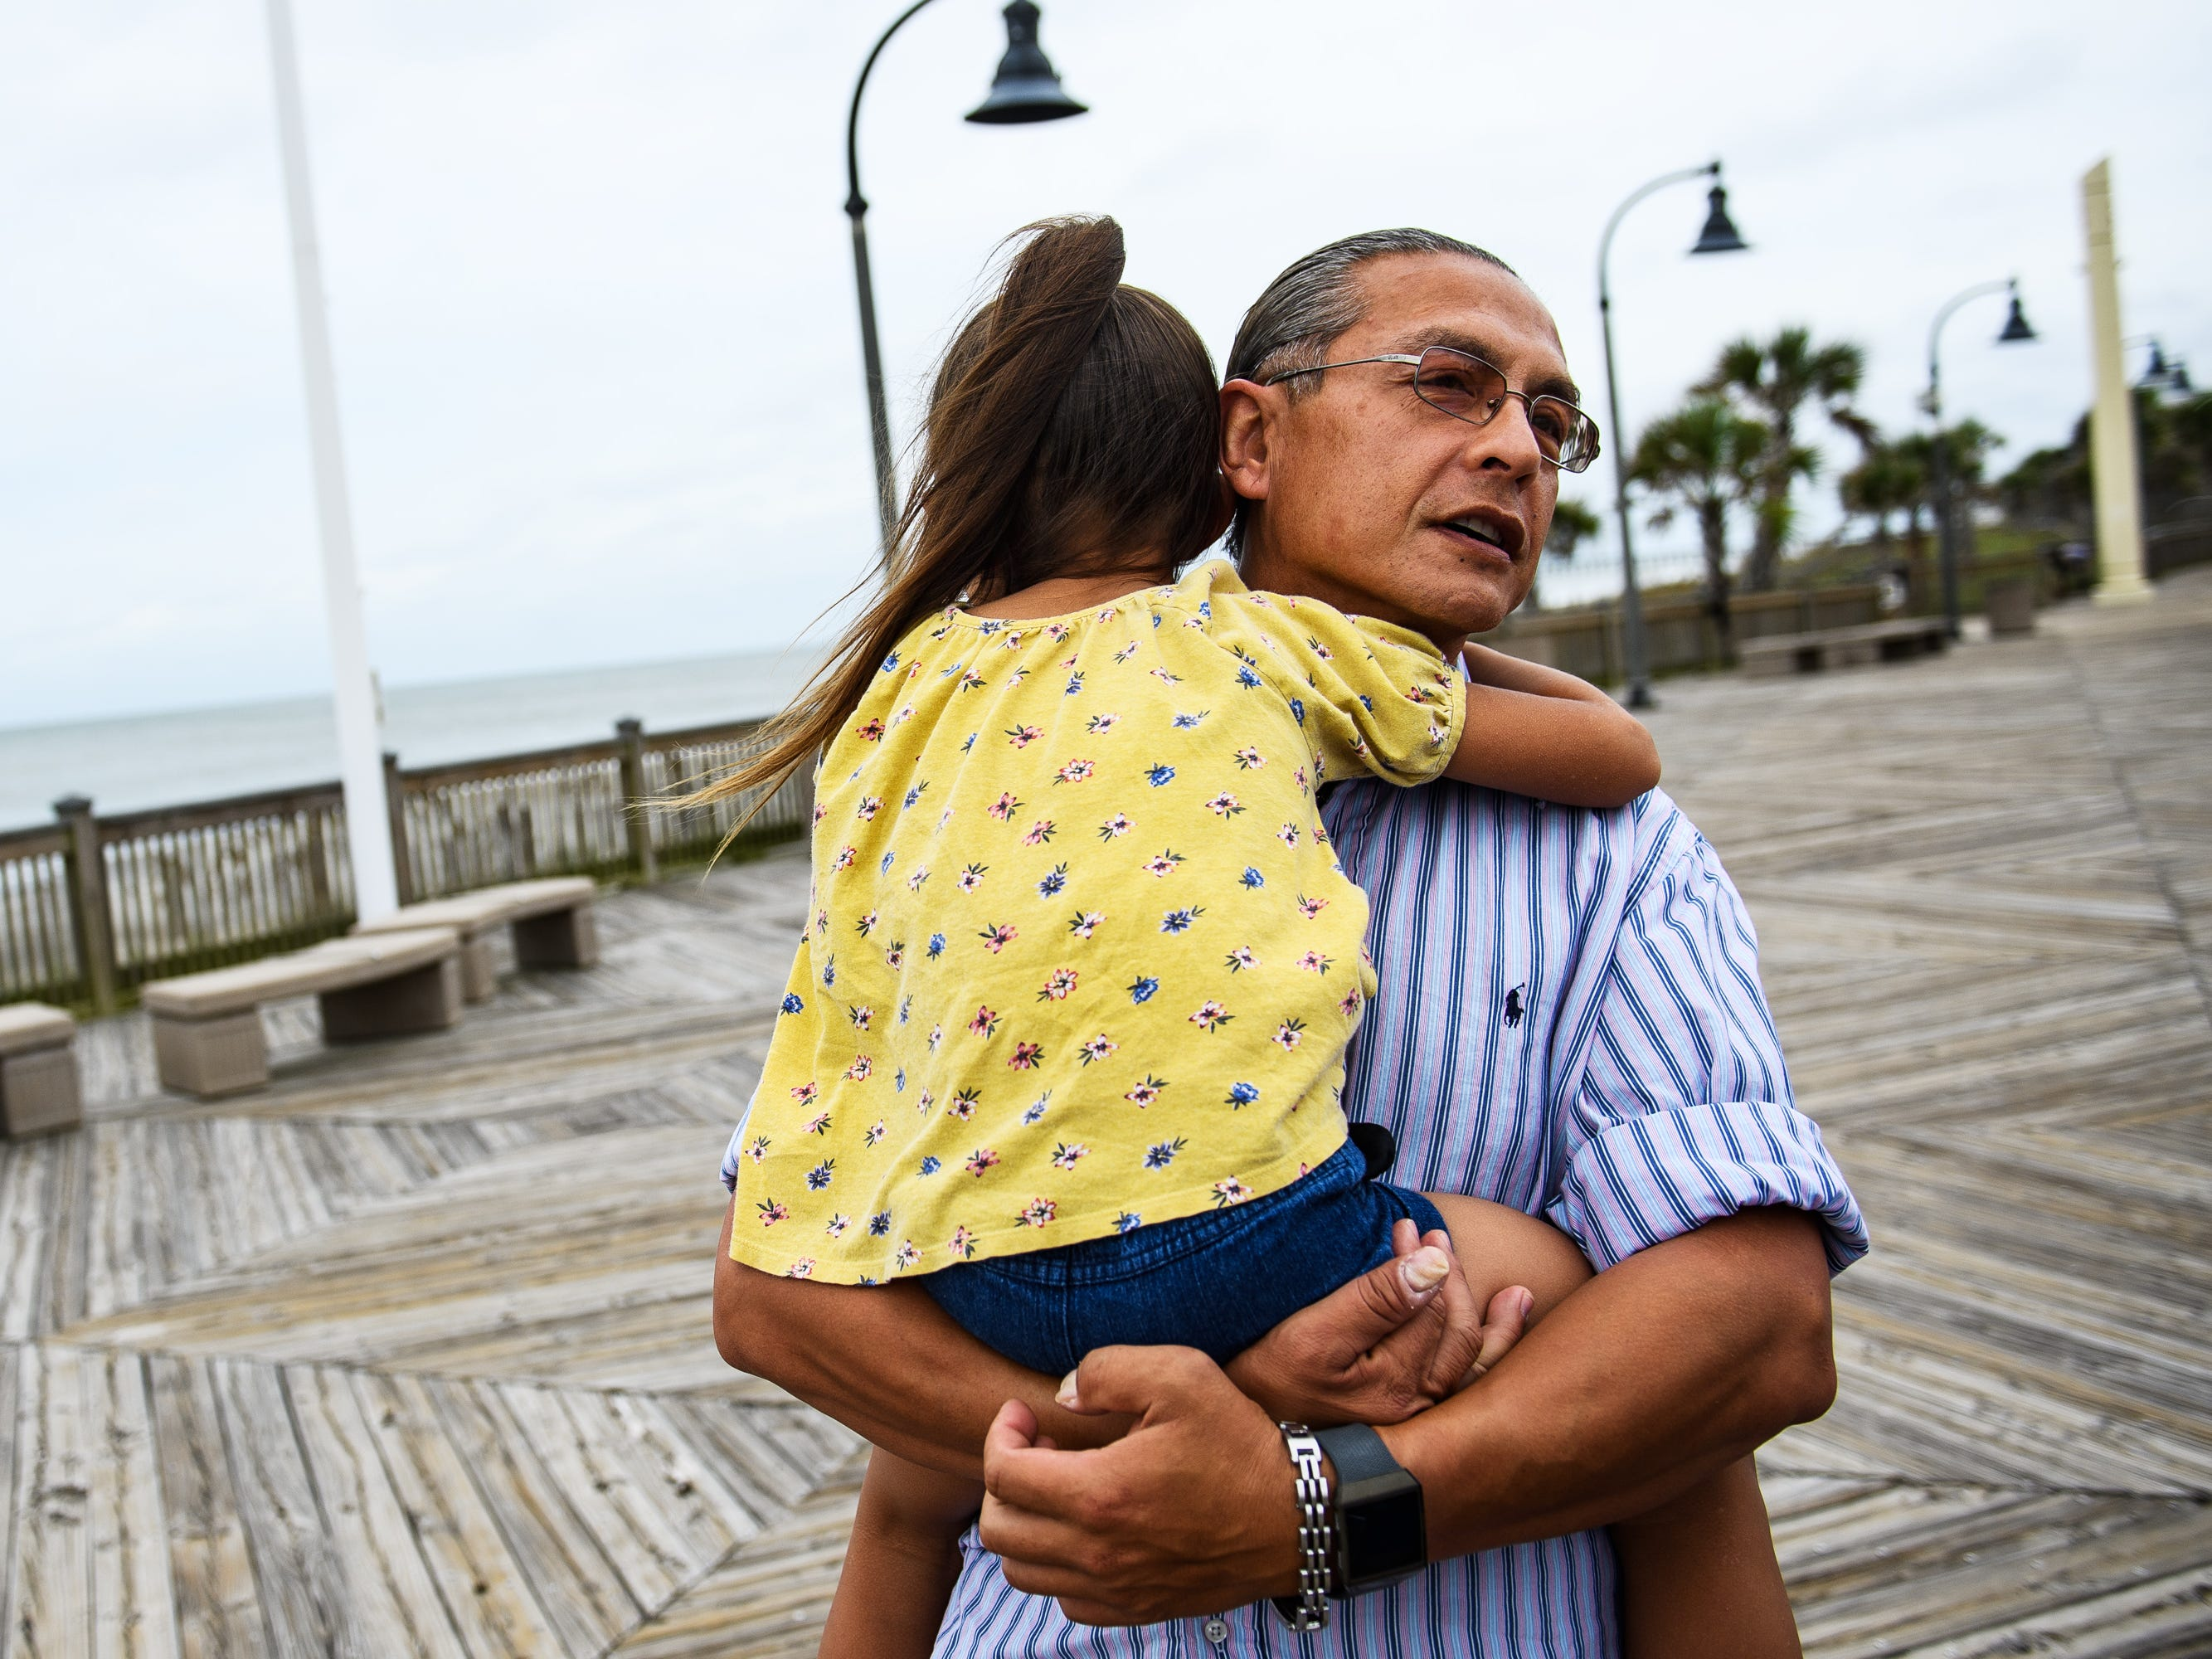 Daniel Dillon holds his daughter Alexis, 5, as he talks about why he chose to stay during Hurricane Florence at the Myrtle Beach Boardwalk and Promenade on Thursday, Sept. 13, 2018.